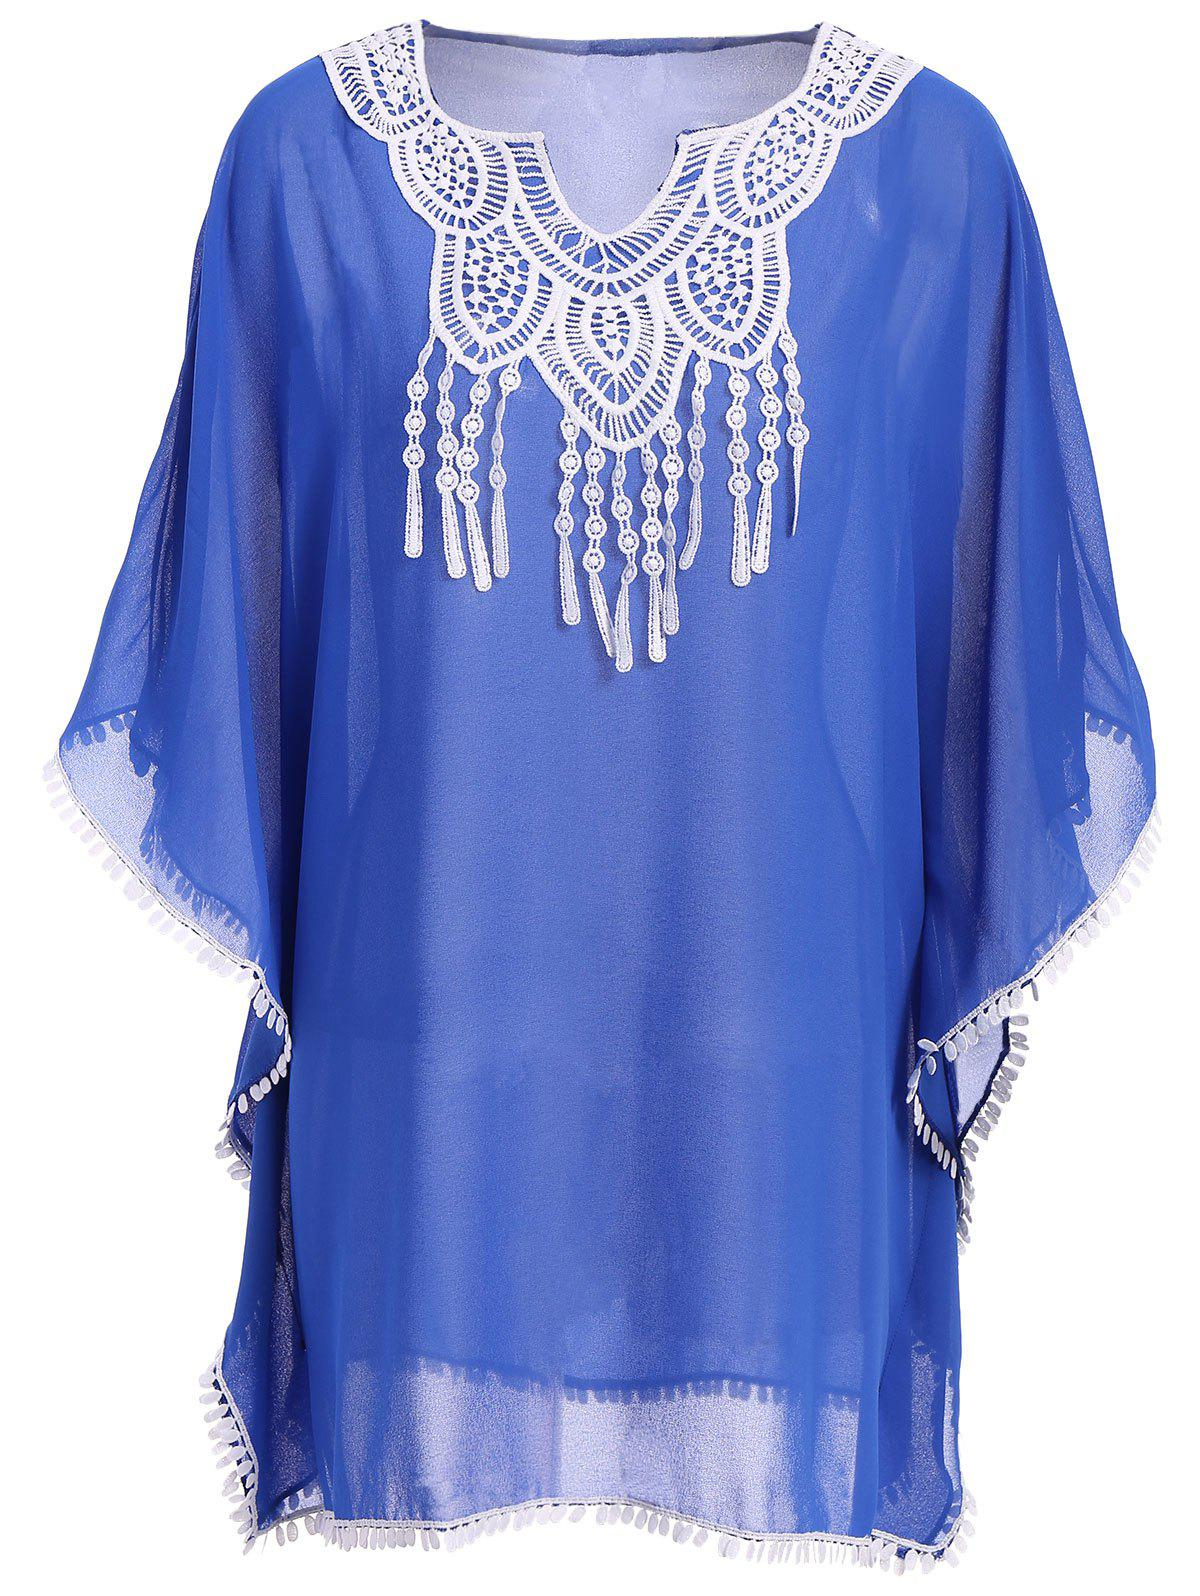 Chic Batwing Sleeve Notched Neck Macrame Spliced Women's Cover Up - BLUE ONE SIZE(FIT SIZE XS TO M)